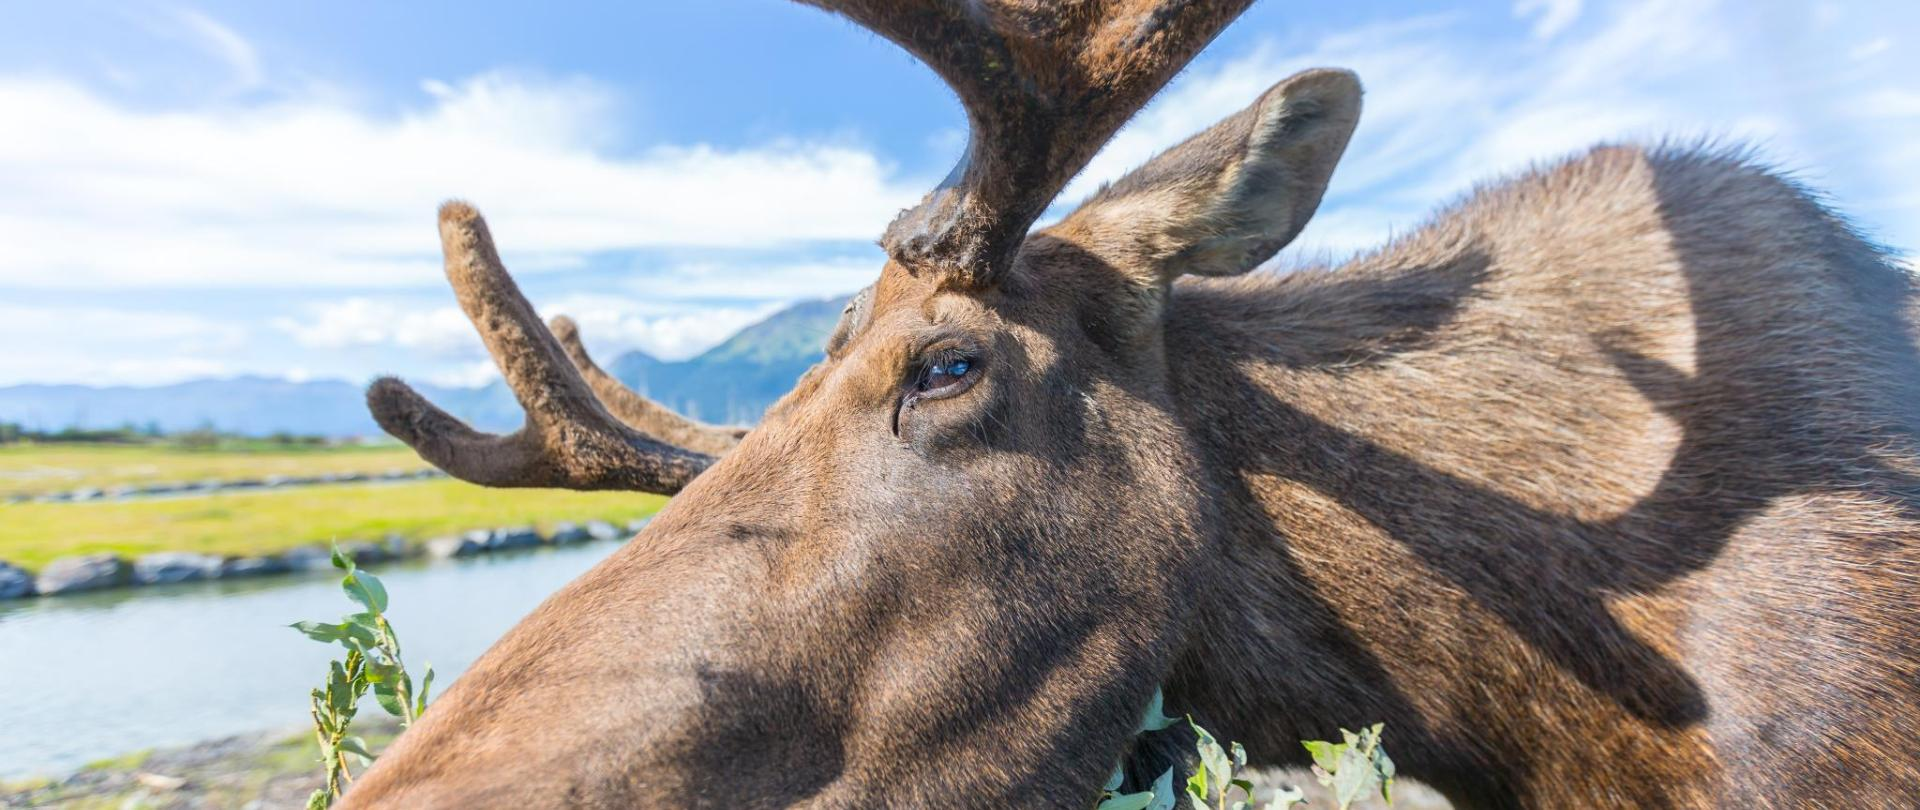 Moose Close up © ThierryDehove AdobeStock_124277118.jpeg